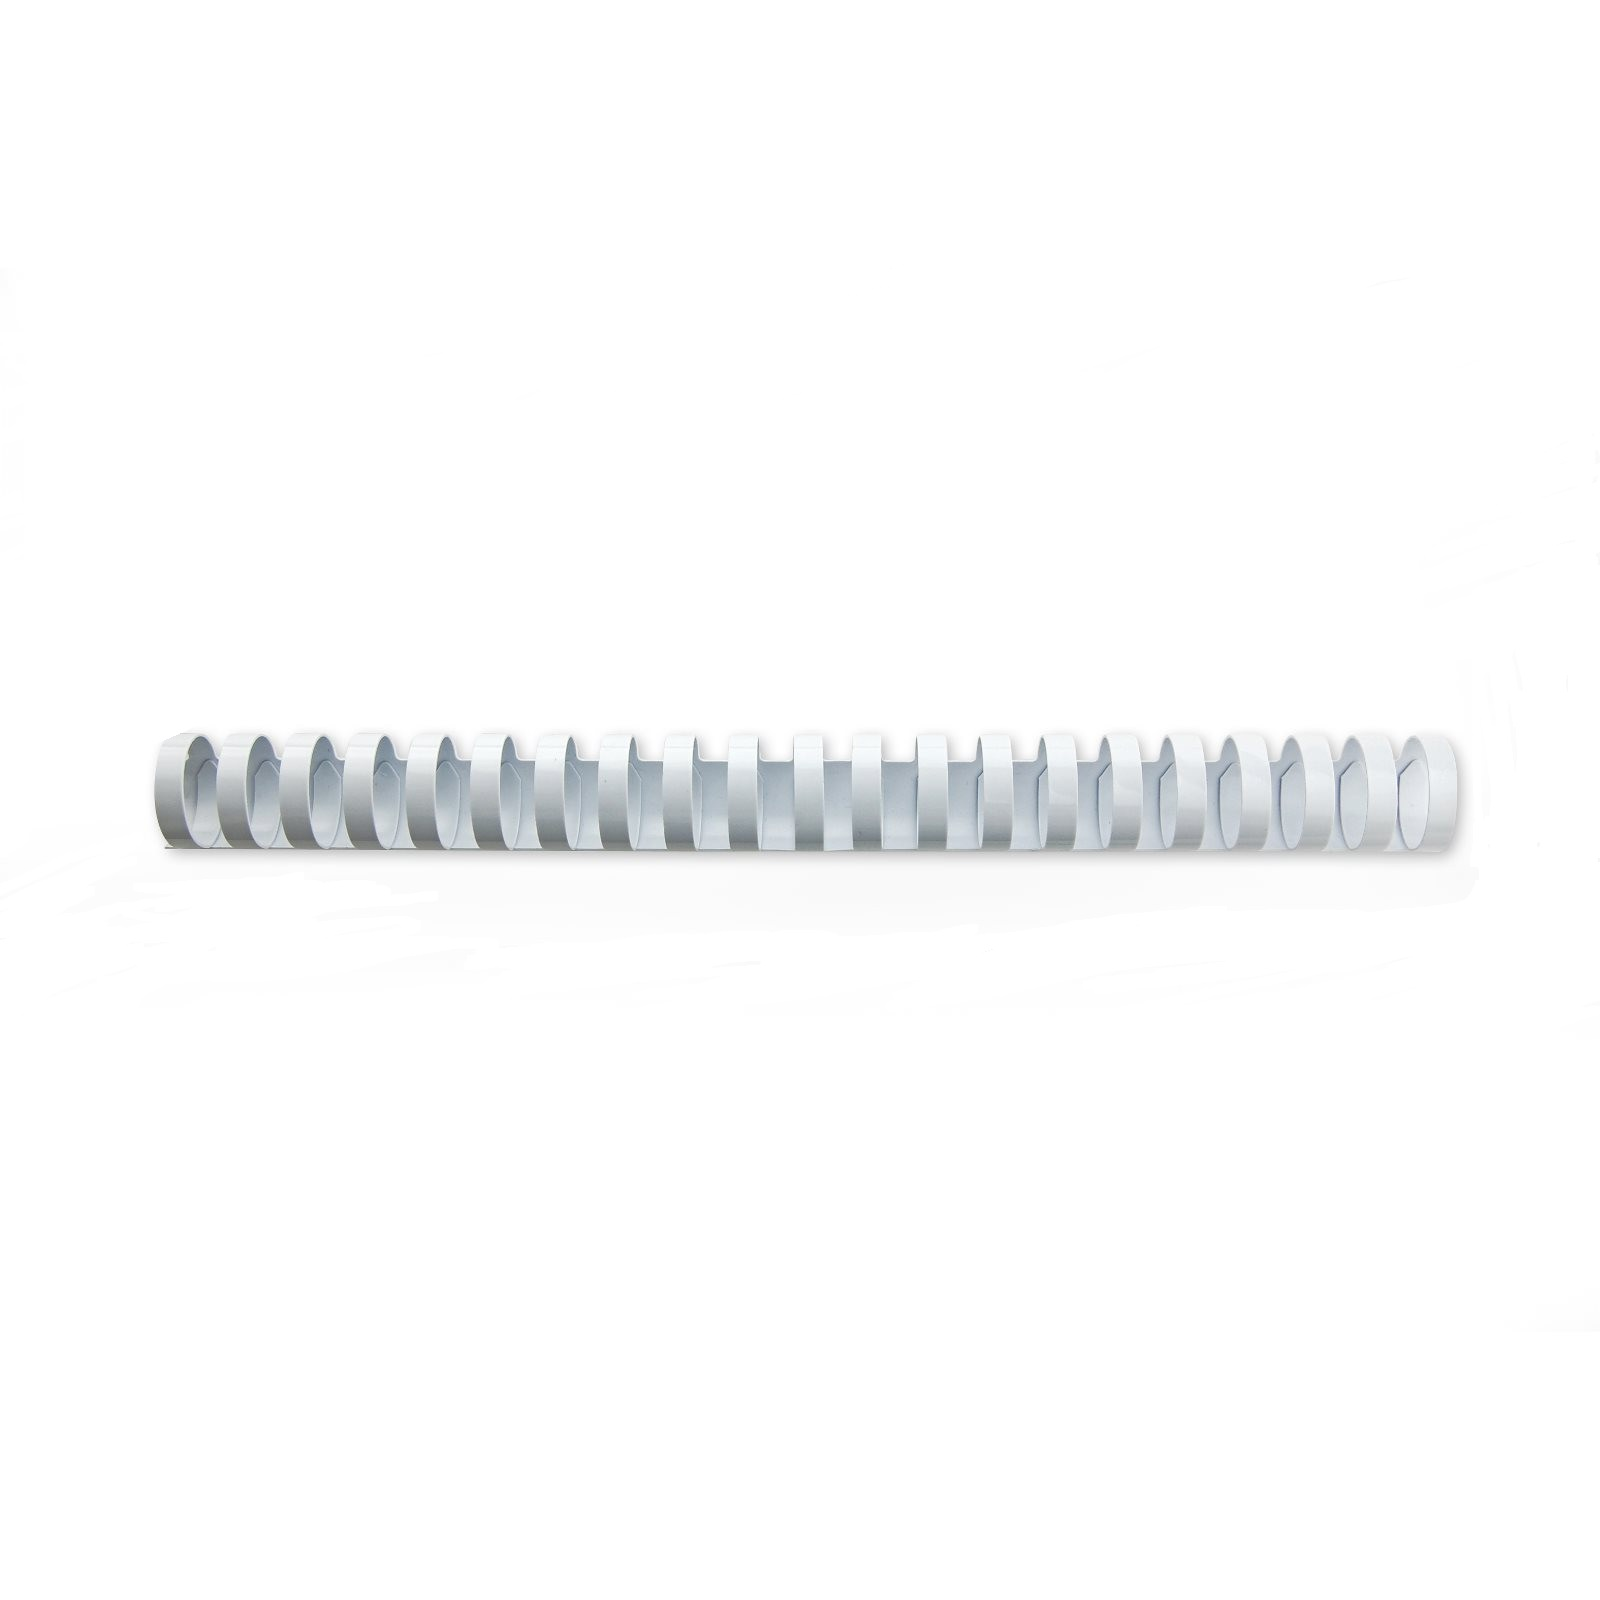 GBC Binding Combs 21 Ring A4 12mm White 4028197 (PK100)